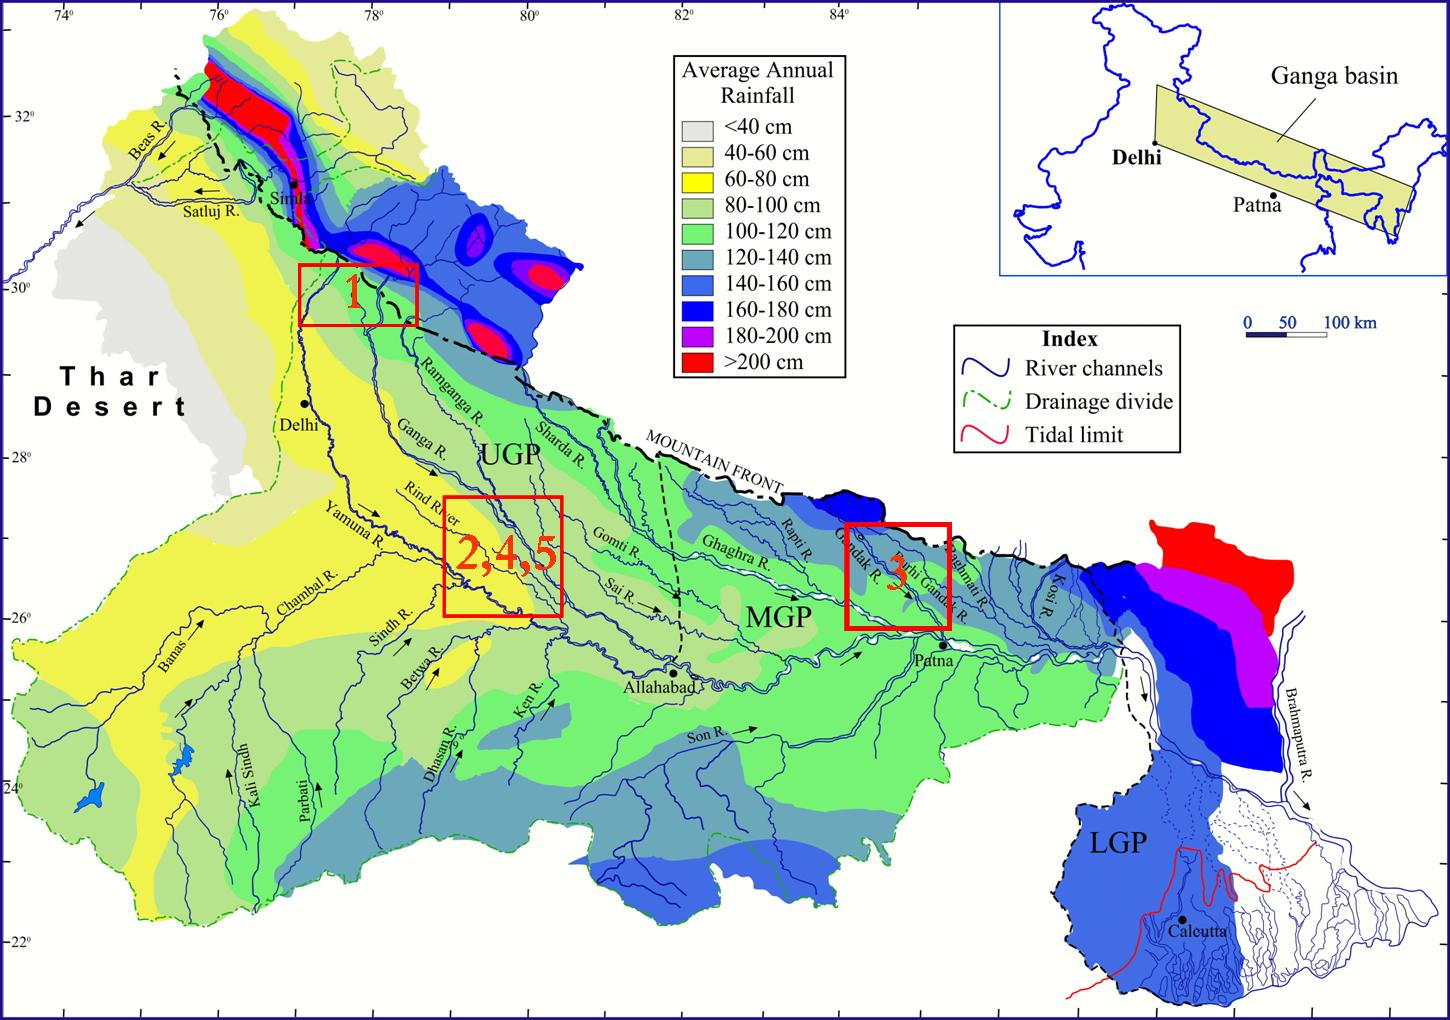 soil analysis of the himalayan mountain system Mountains geography how was the mountain system of the himalayas formed update cancel answer wiki 4 answers sunny naval singh, bored  updated jul 6, 2017.